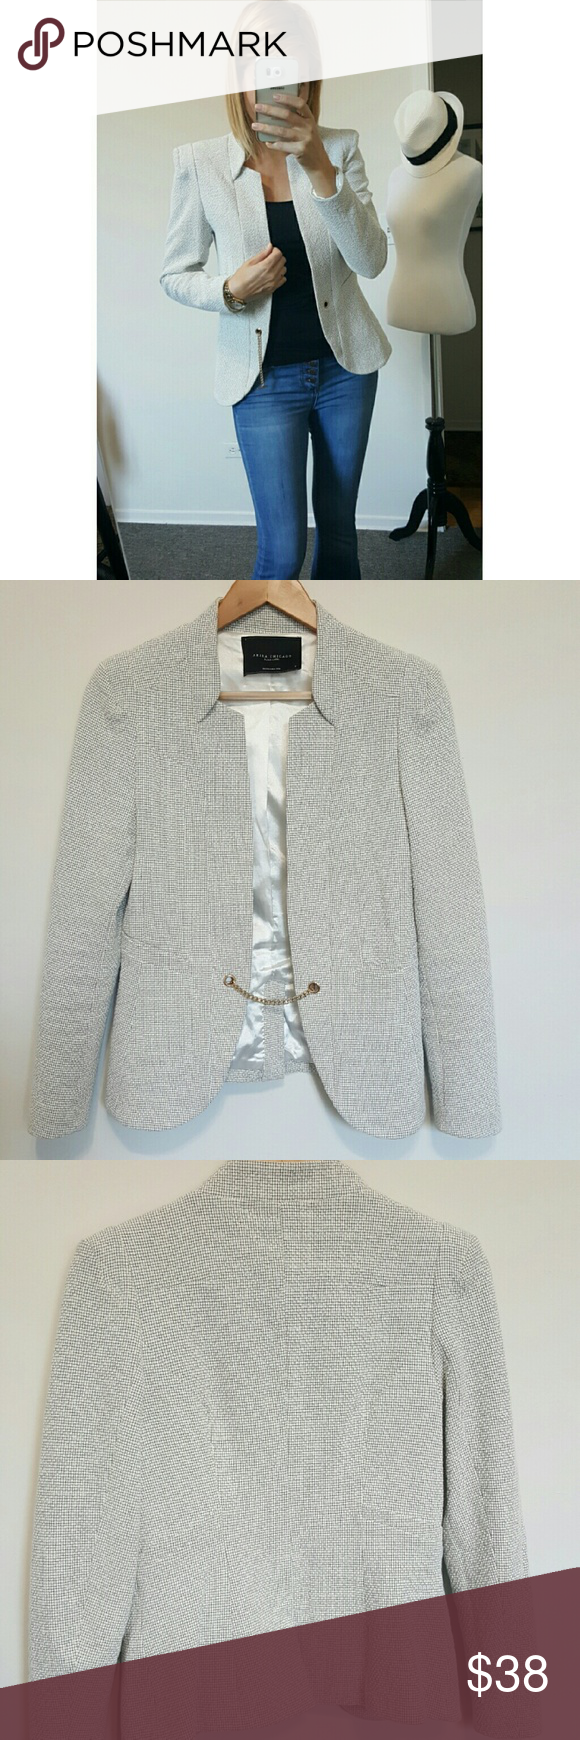 AKIRA Textured Blazer This is a gorgeous Akira blazer in great condition. No stains,  tears,  or flaws.  Has a gold chain latch for a unique style. This can be worn to work or going out on the weekends! AKIRA Jackets & Coats Blazers